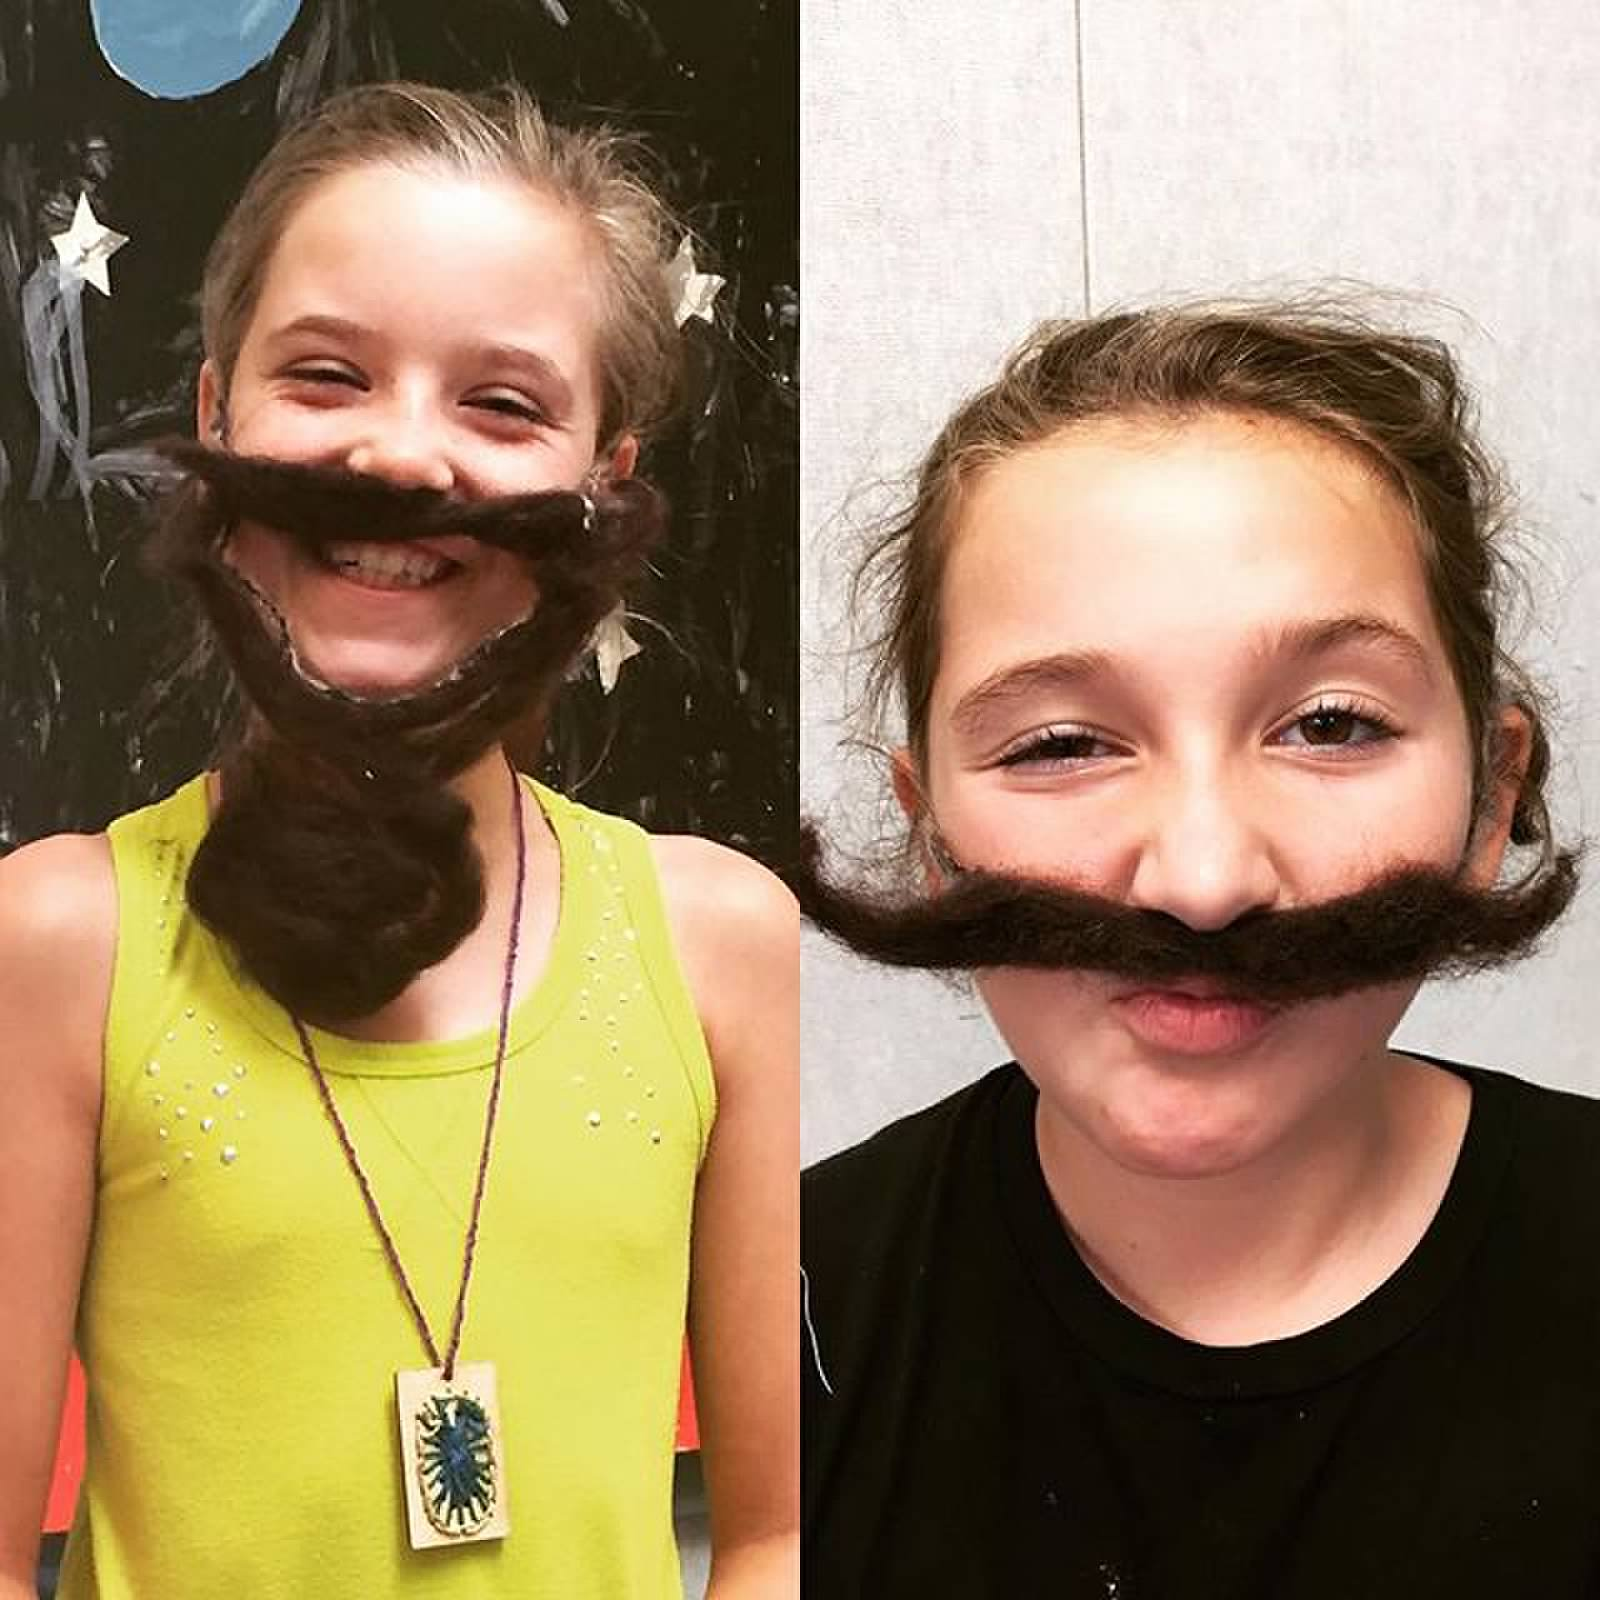 Facial Hair shenanigans during our felting workshop!